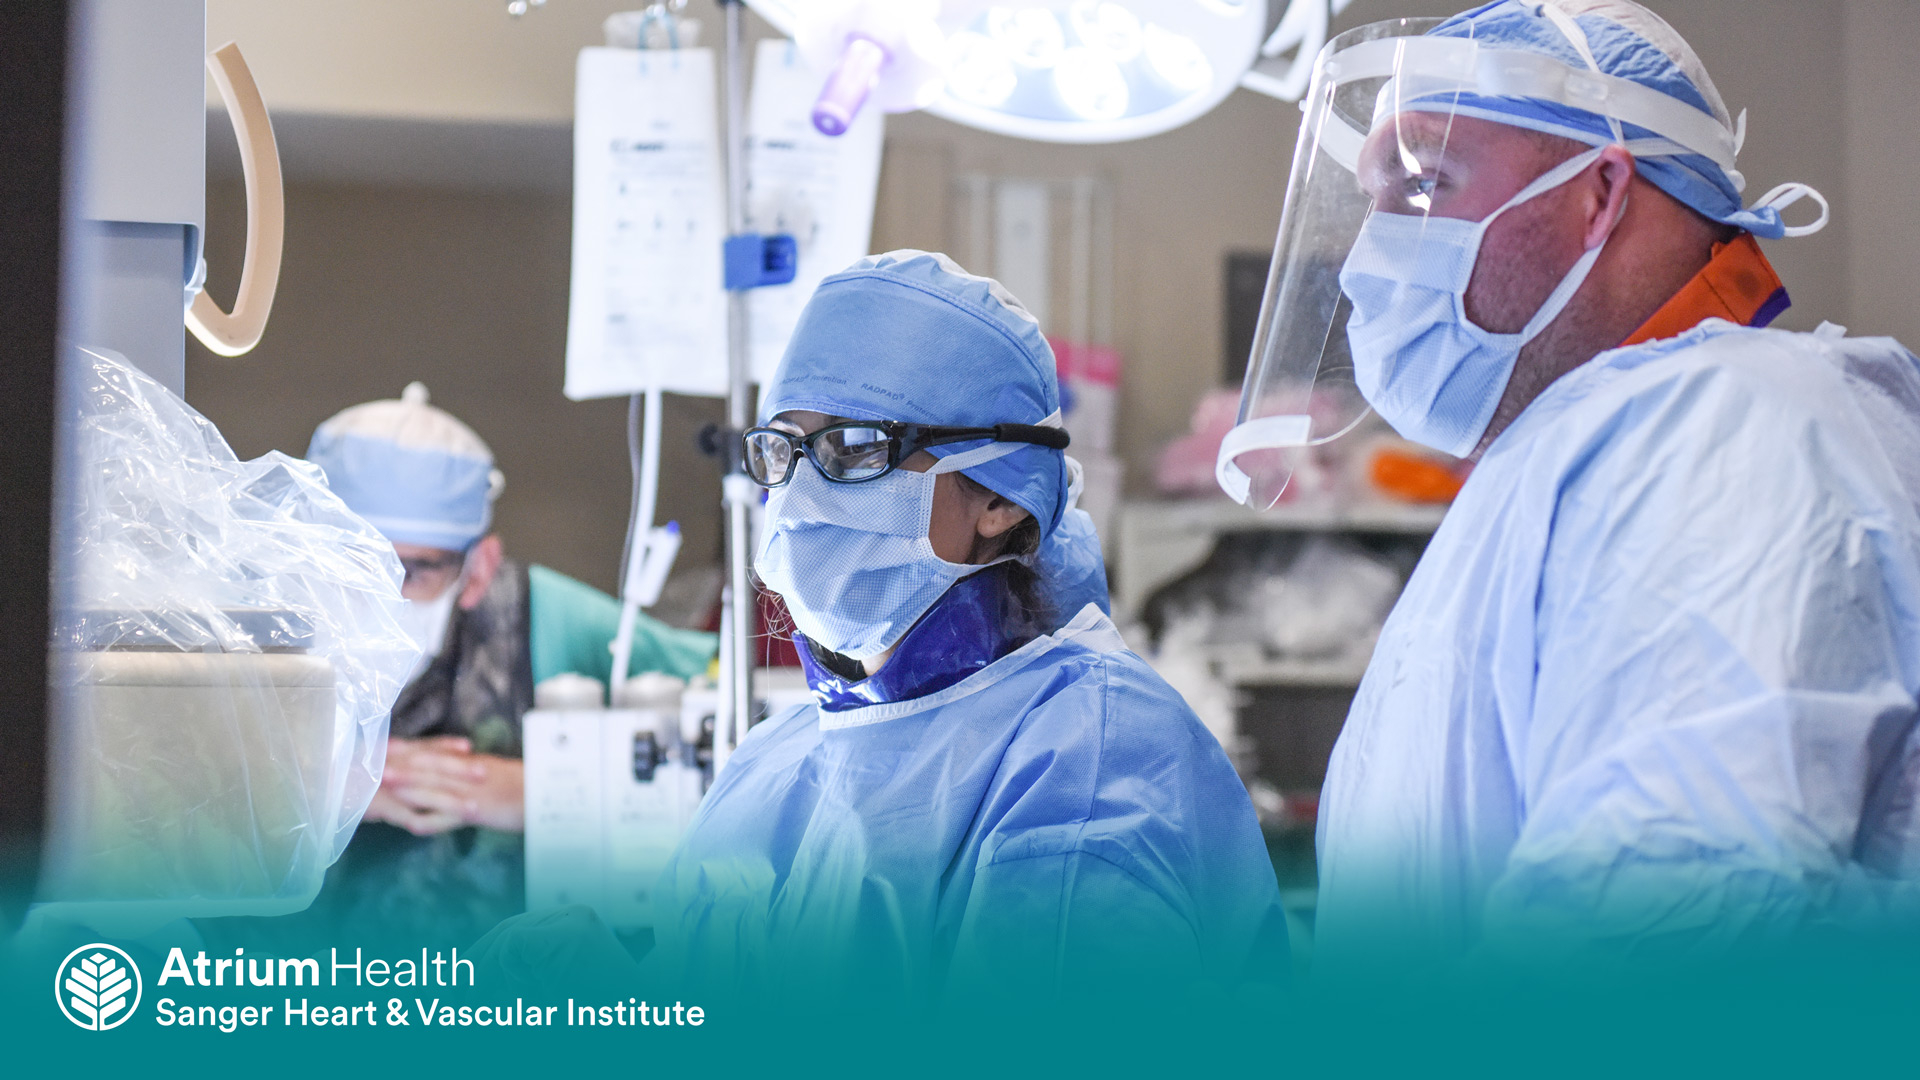 This weekend marks the 70th annual American College of Cardiology (ACC) conference, where experts from around the world gather to share the latest clinical research and innovations in heart care.